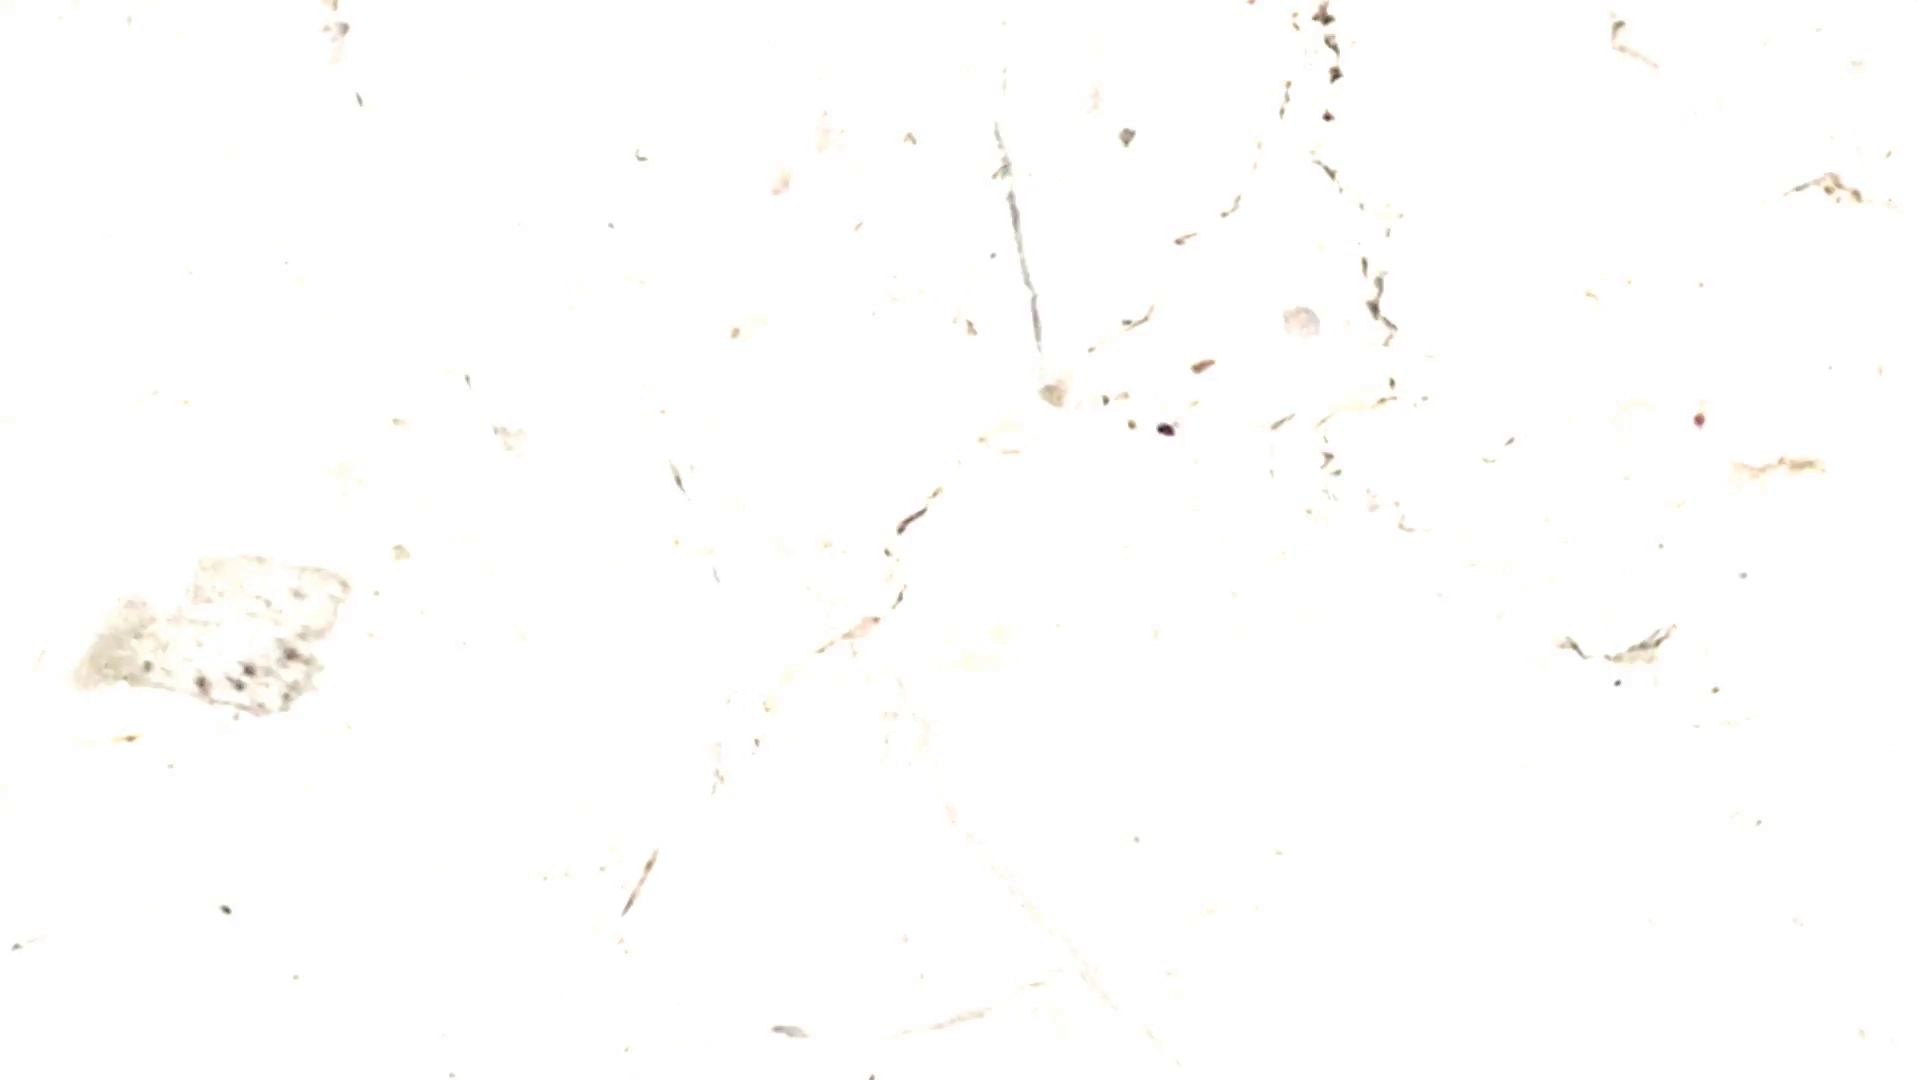 Scratches HD PNG - 91418